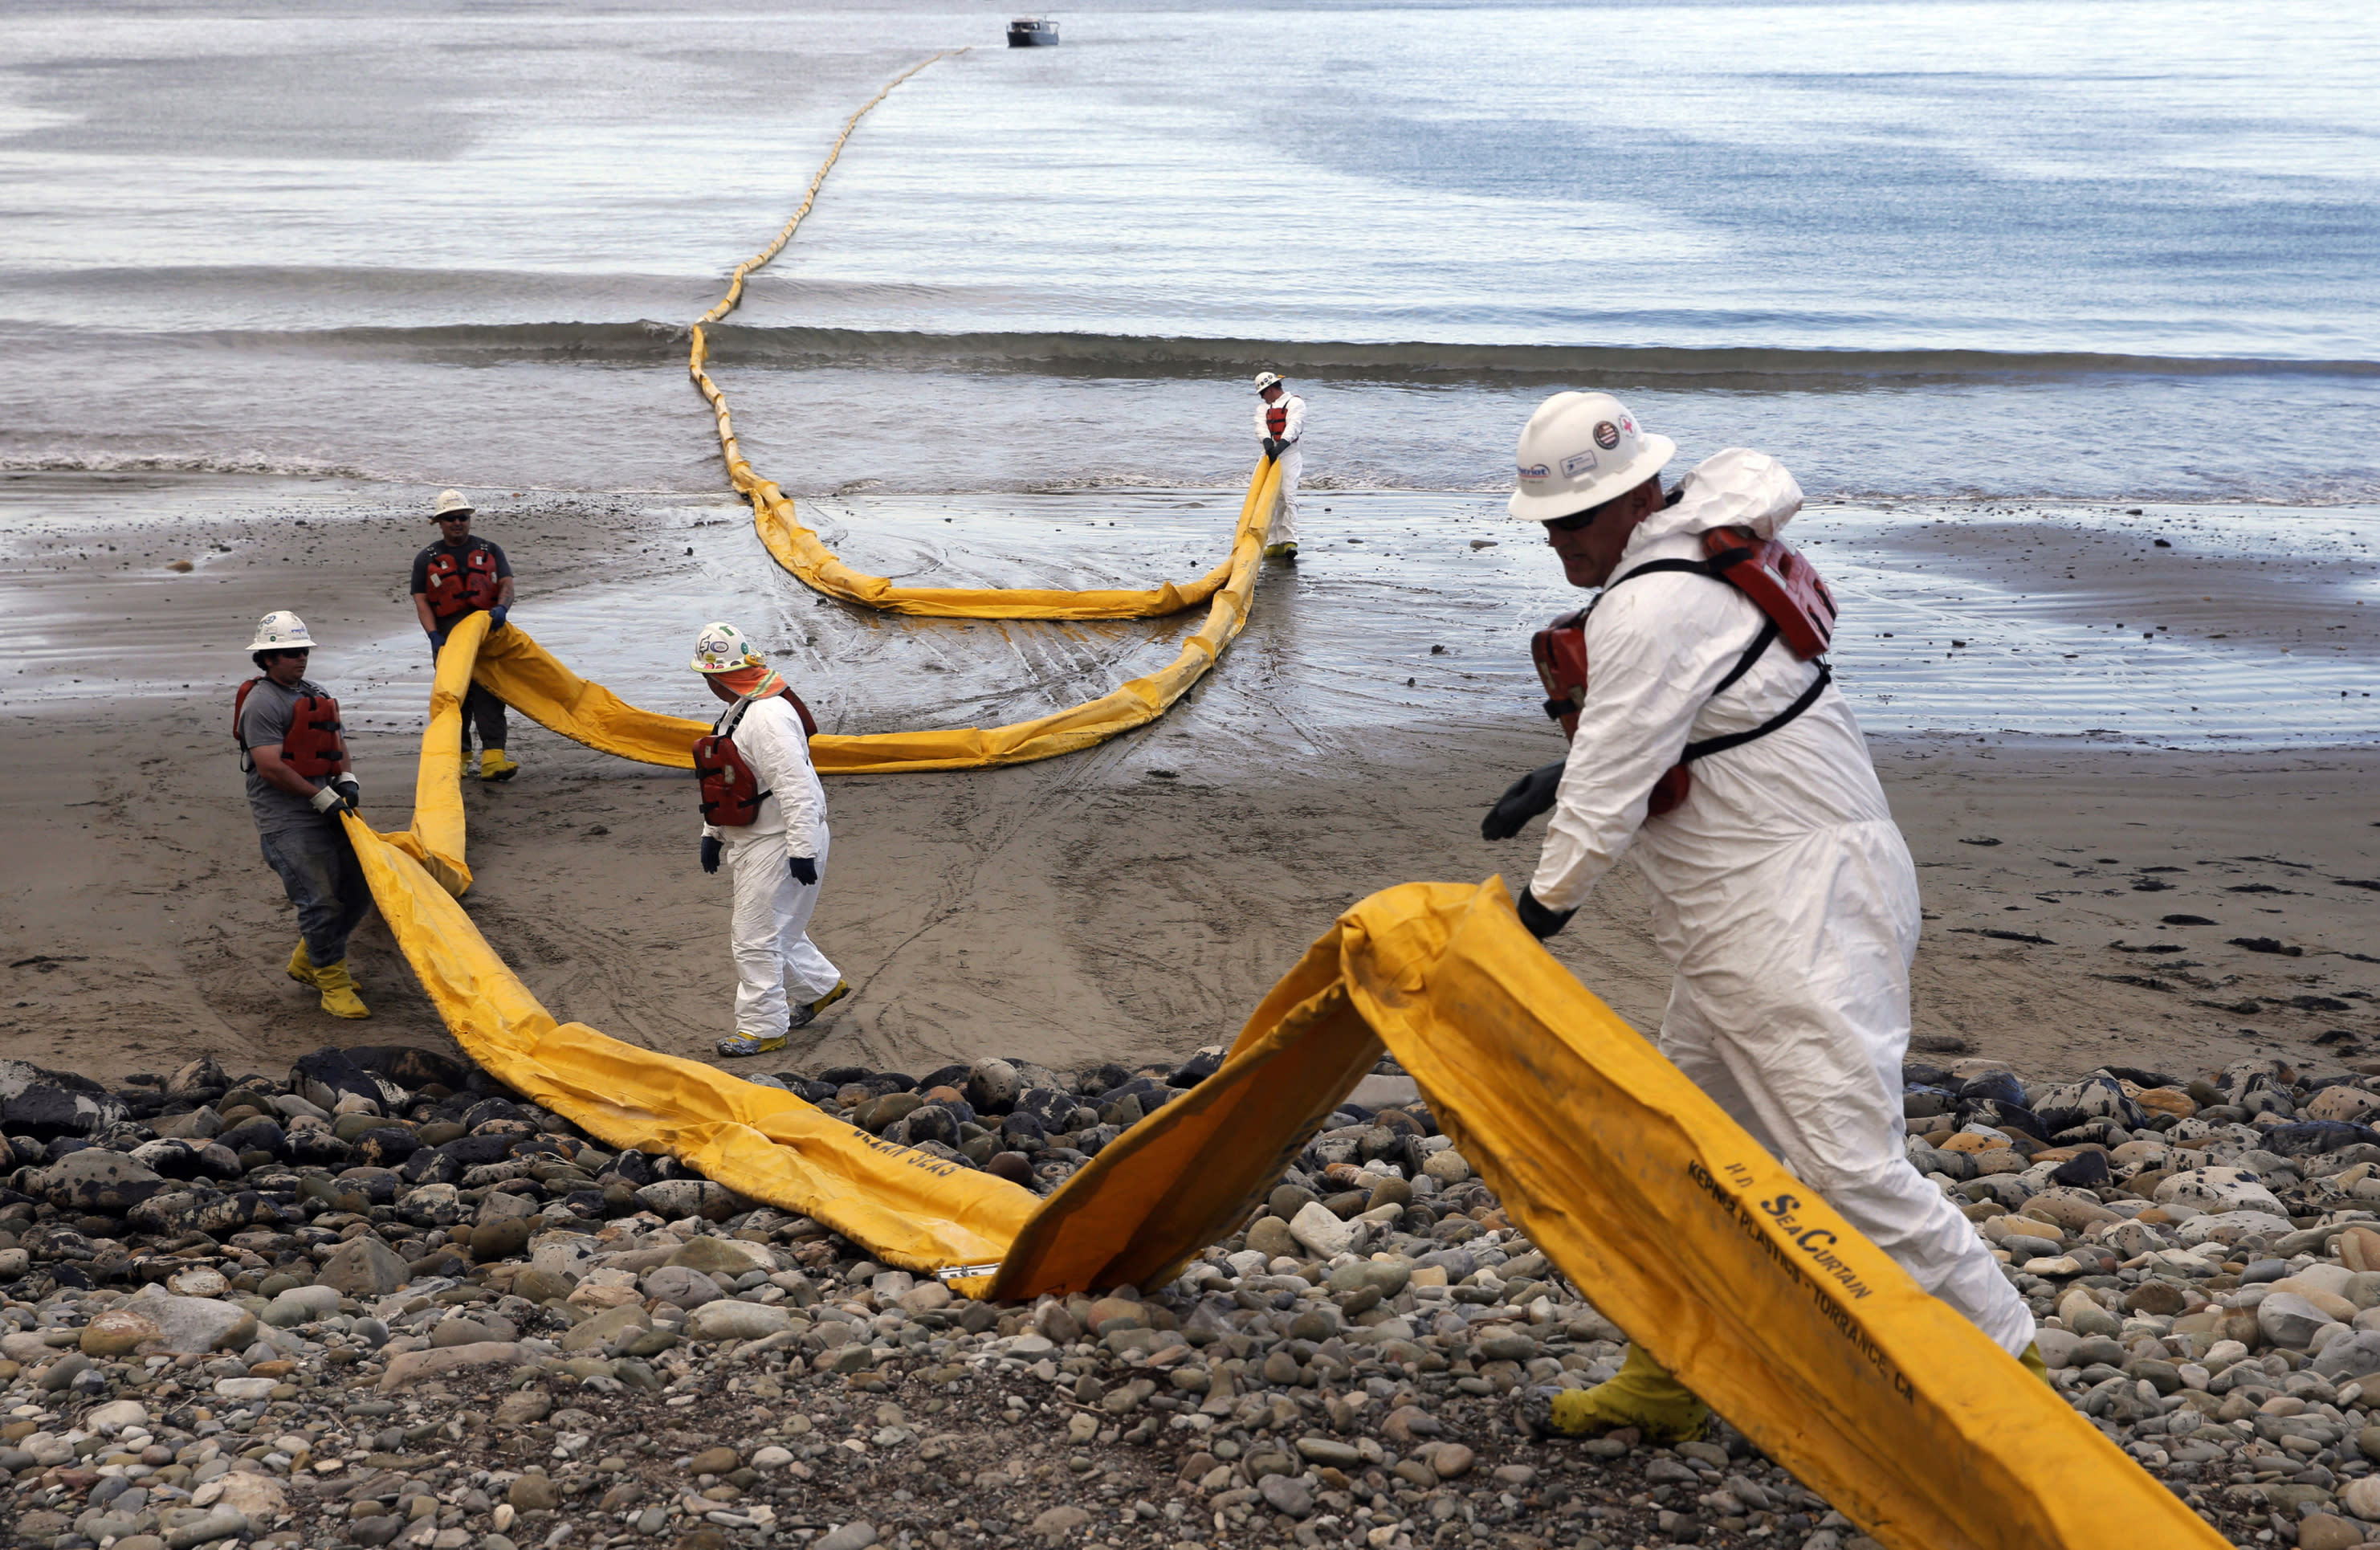 FILE - In this May 21, 2015, file photo, workers prepare an oil containment boom at Refugio State Beach, north of Goleta, Calif., two days after an oil pipeline ruptured, polluting beaches and killing hundreds of birds and marine mammals. California Gov. Gavin Newsom on Saturday, Oct. 12, 2019, signed a law intended to counter Trump administration plans to increase oil and gas production on protected public land. (AP Photo/Jae C. Hong, File)